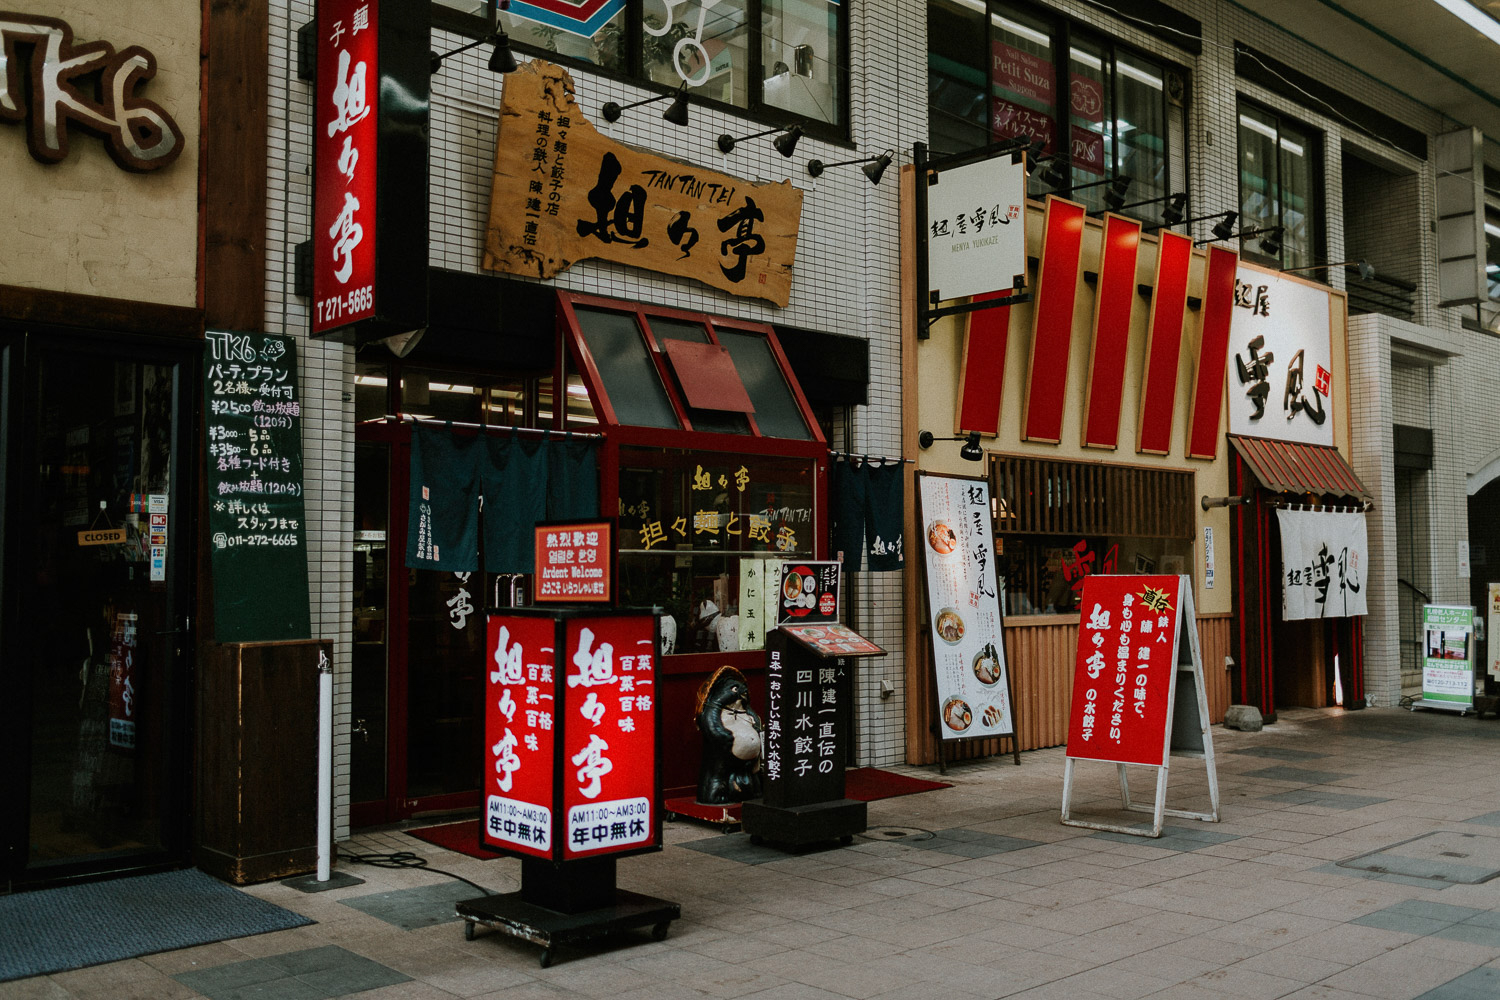 Image of shop front in Sapporo